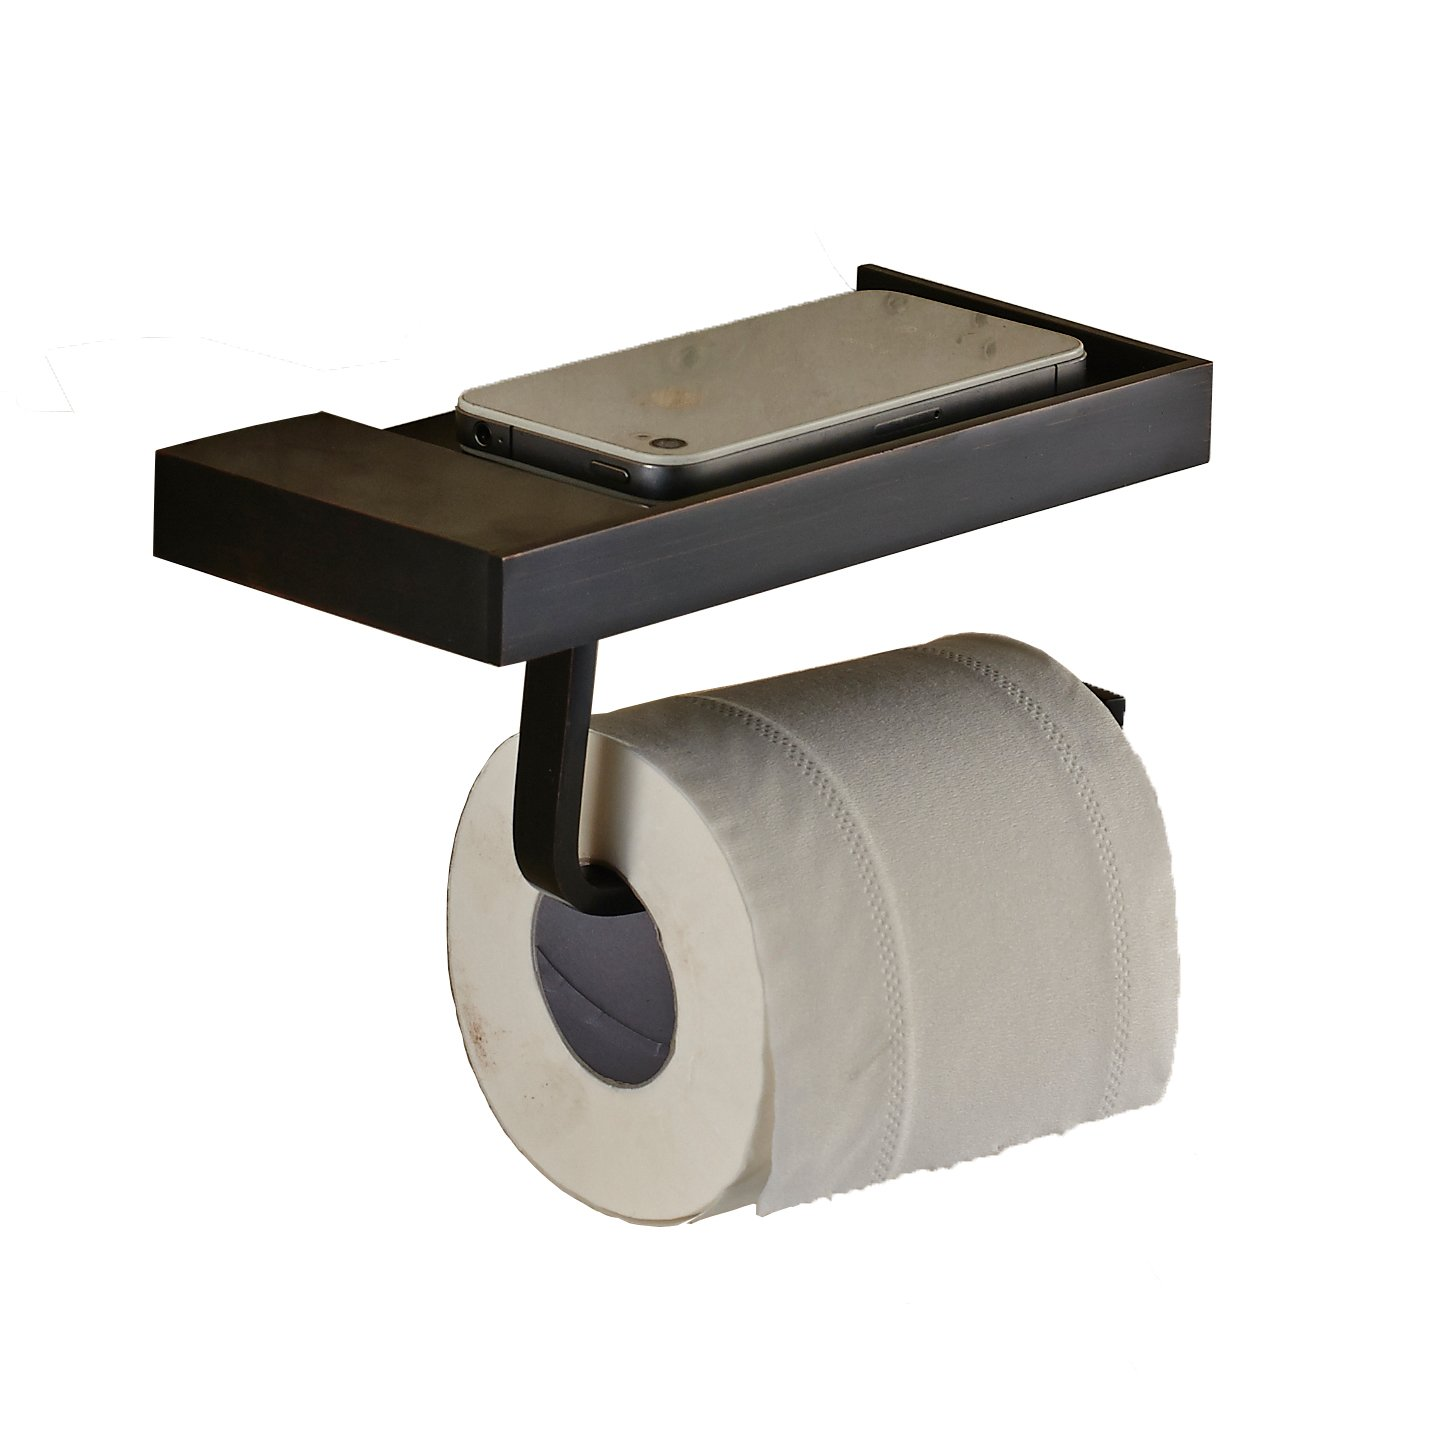 Rozin Multifunction Toilet Paper Holder with Storage Holder Function Oil Rubbed Bronze